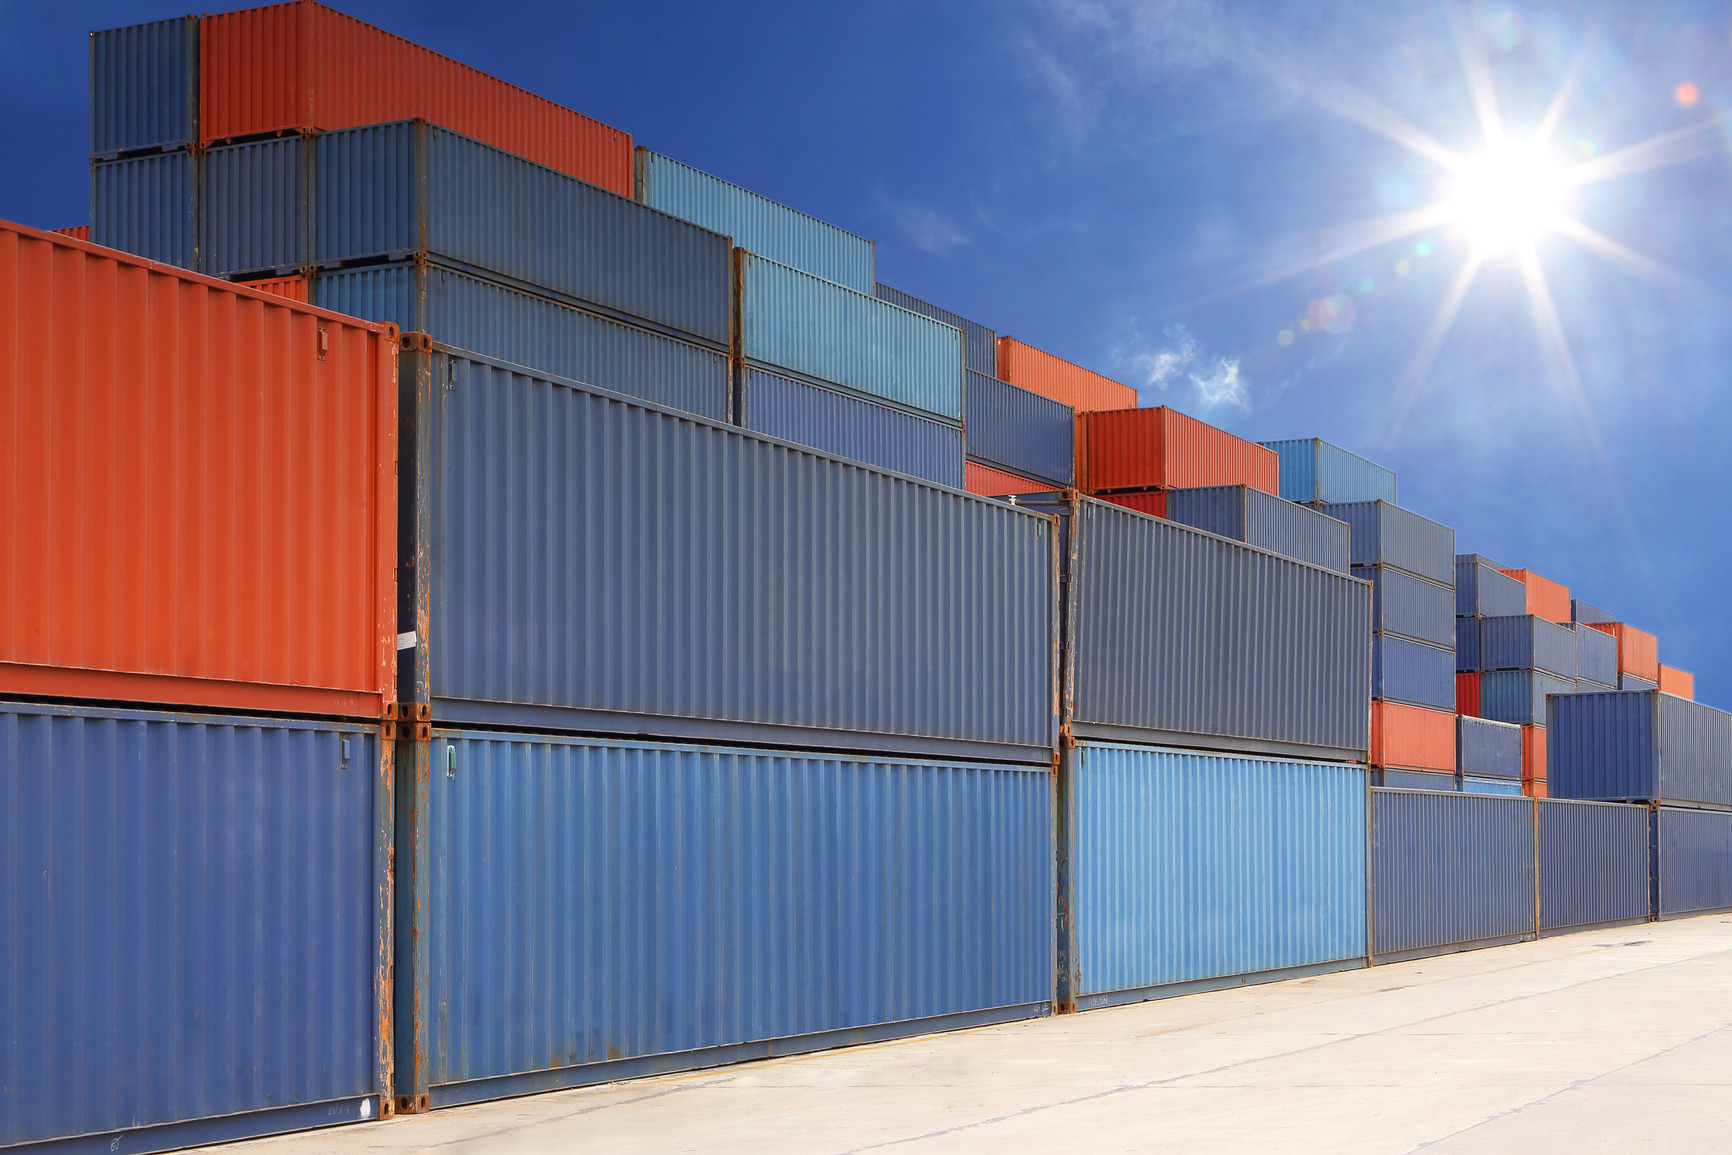 photodune-5486478-stack-of-cargo-containers-at-container-yard-with-sunbeam-m